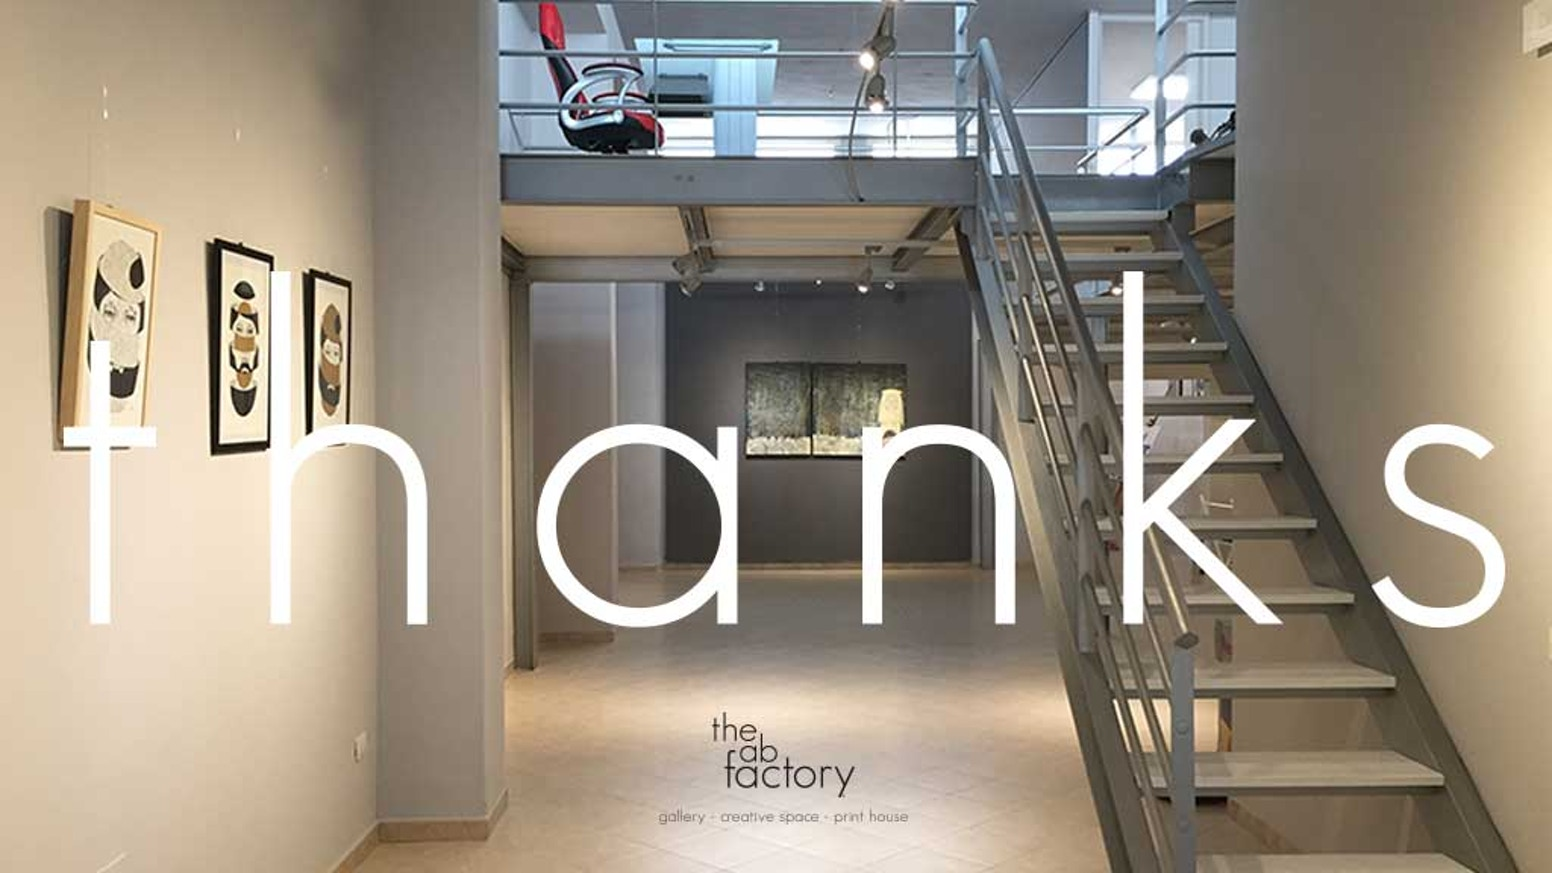 Support art, support artists to create a fully equipped artistic laboratory, gallery, creative space and print house in Cagliari, Italy